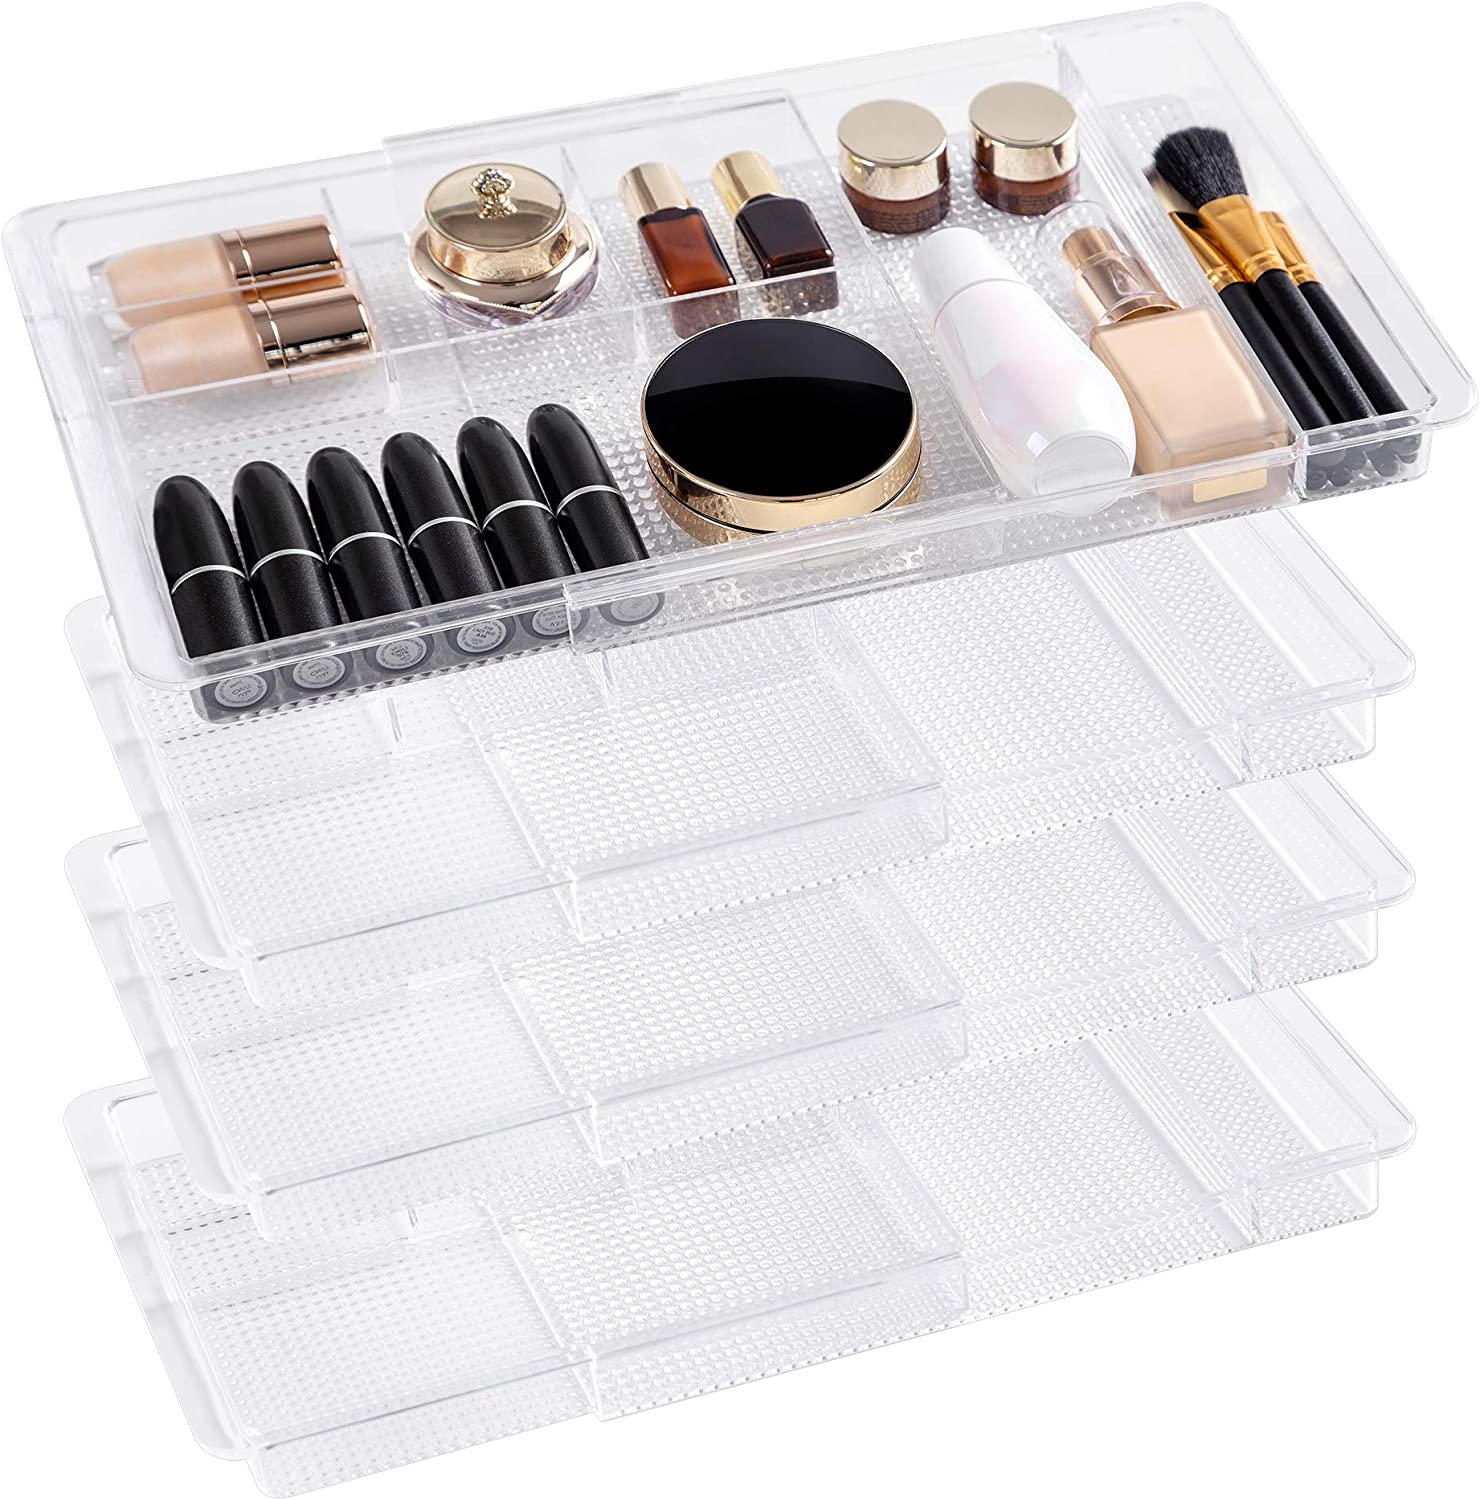 Amazon Com Oubonun Expandable Drawer Organizer 11 1 To 19 2 Width Shallow Cosmetic Organizer 1 3 Height 4 Packs Clear Plastic Storage Trays With 7 Compartments For Dressing Table Bathroom And Office Desk Home Improvement